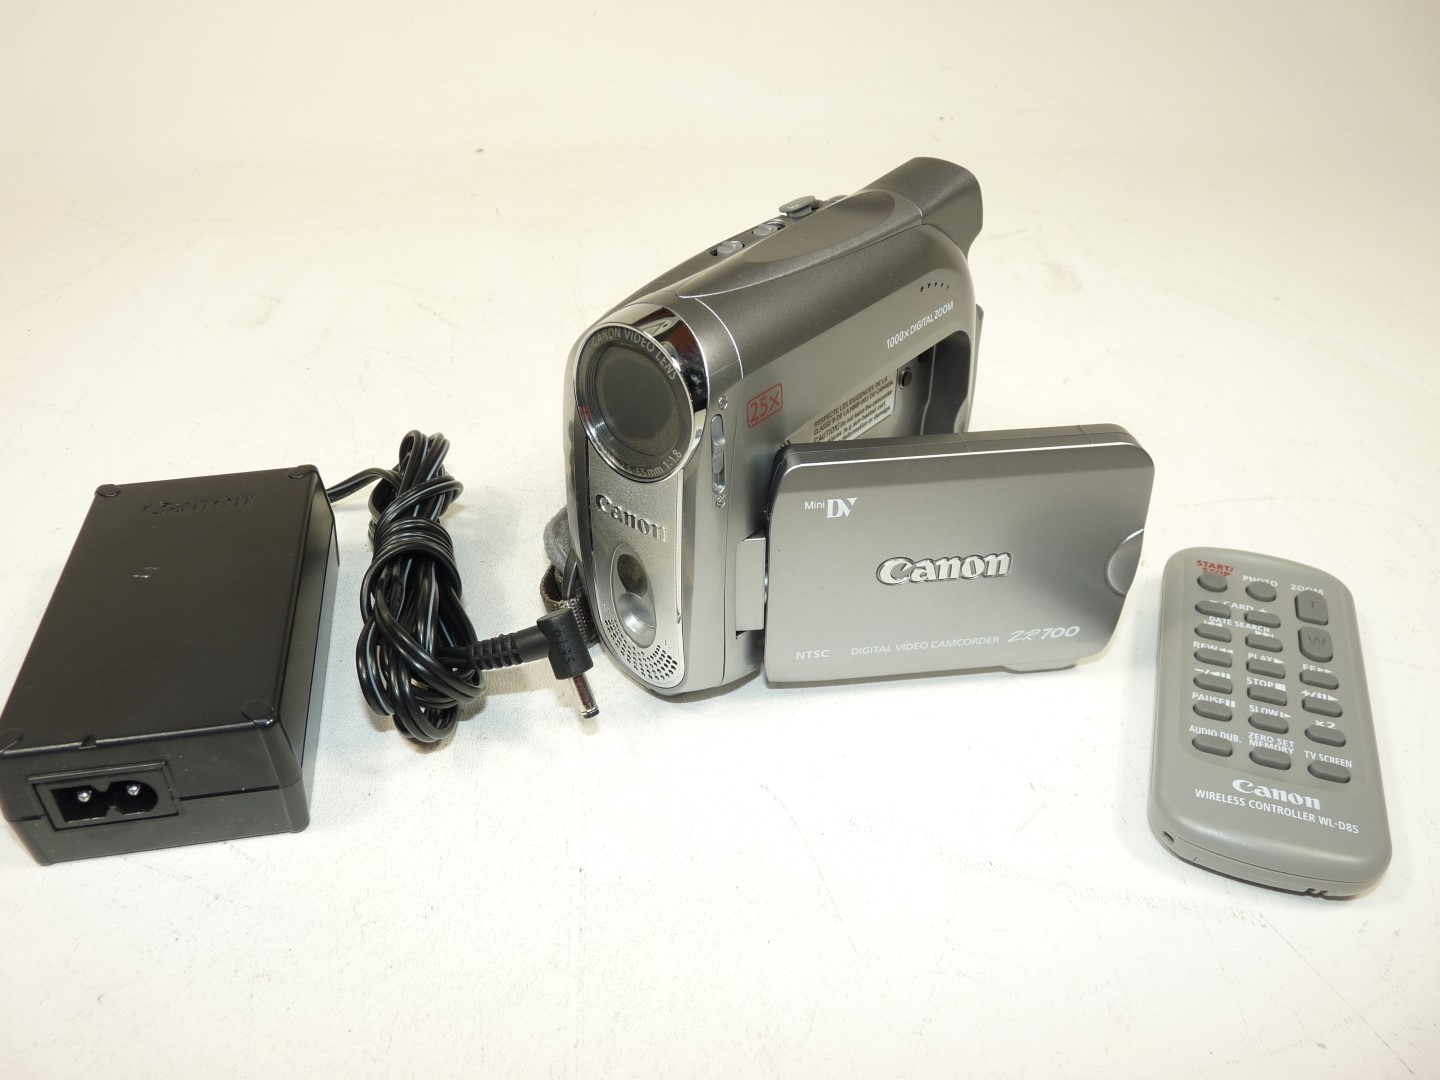 canon zr700 ntsc minidv digital video camcorder w psu remote power rh ebay com Canon ZR500 Accessories Canon ZR850 Battery